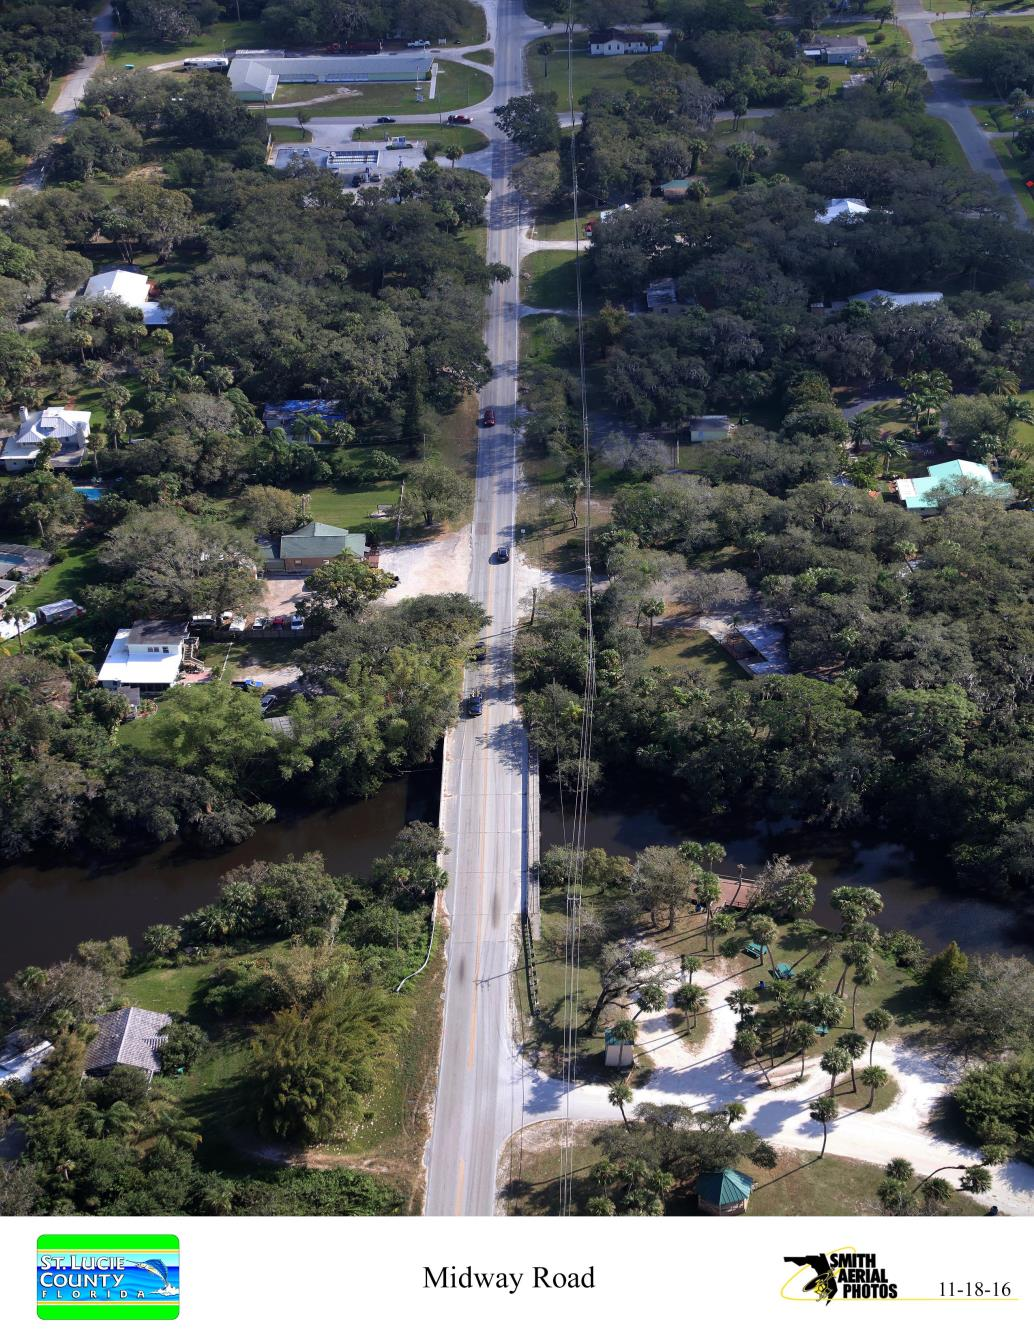 Aerials11_017_11_18_16_Midway Rd looking east over St. Lucie River